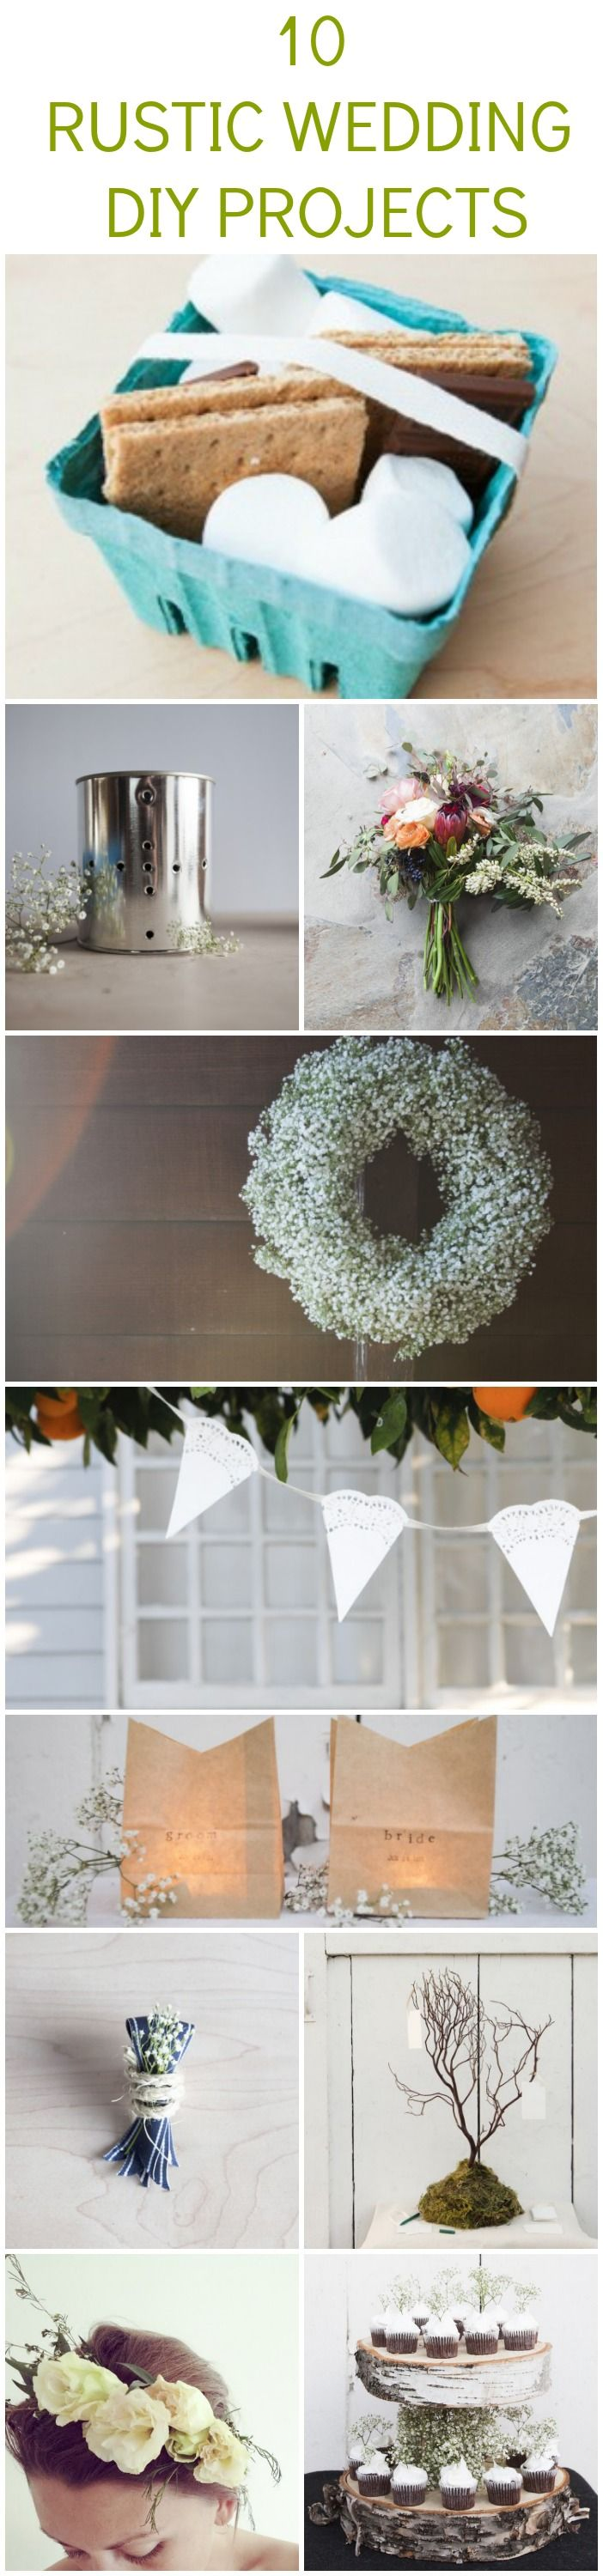 Hide your cheap side with these fancy-looking diy projects  #cheapside #diy #wedding